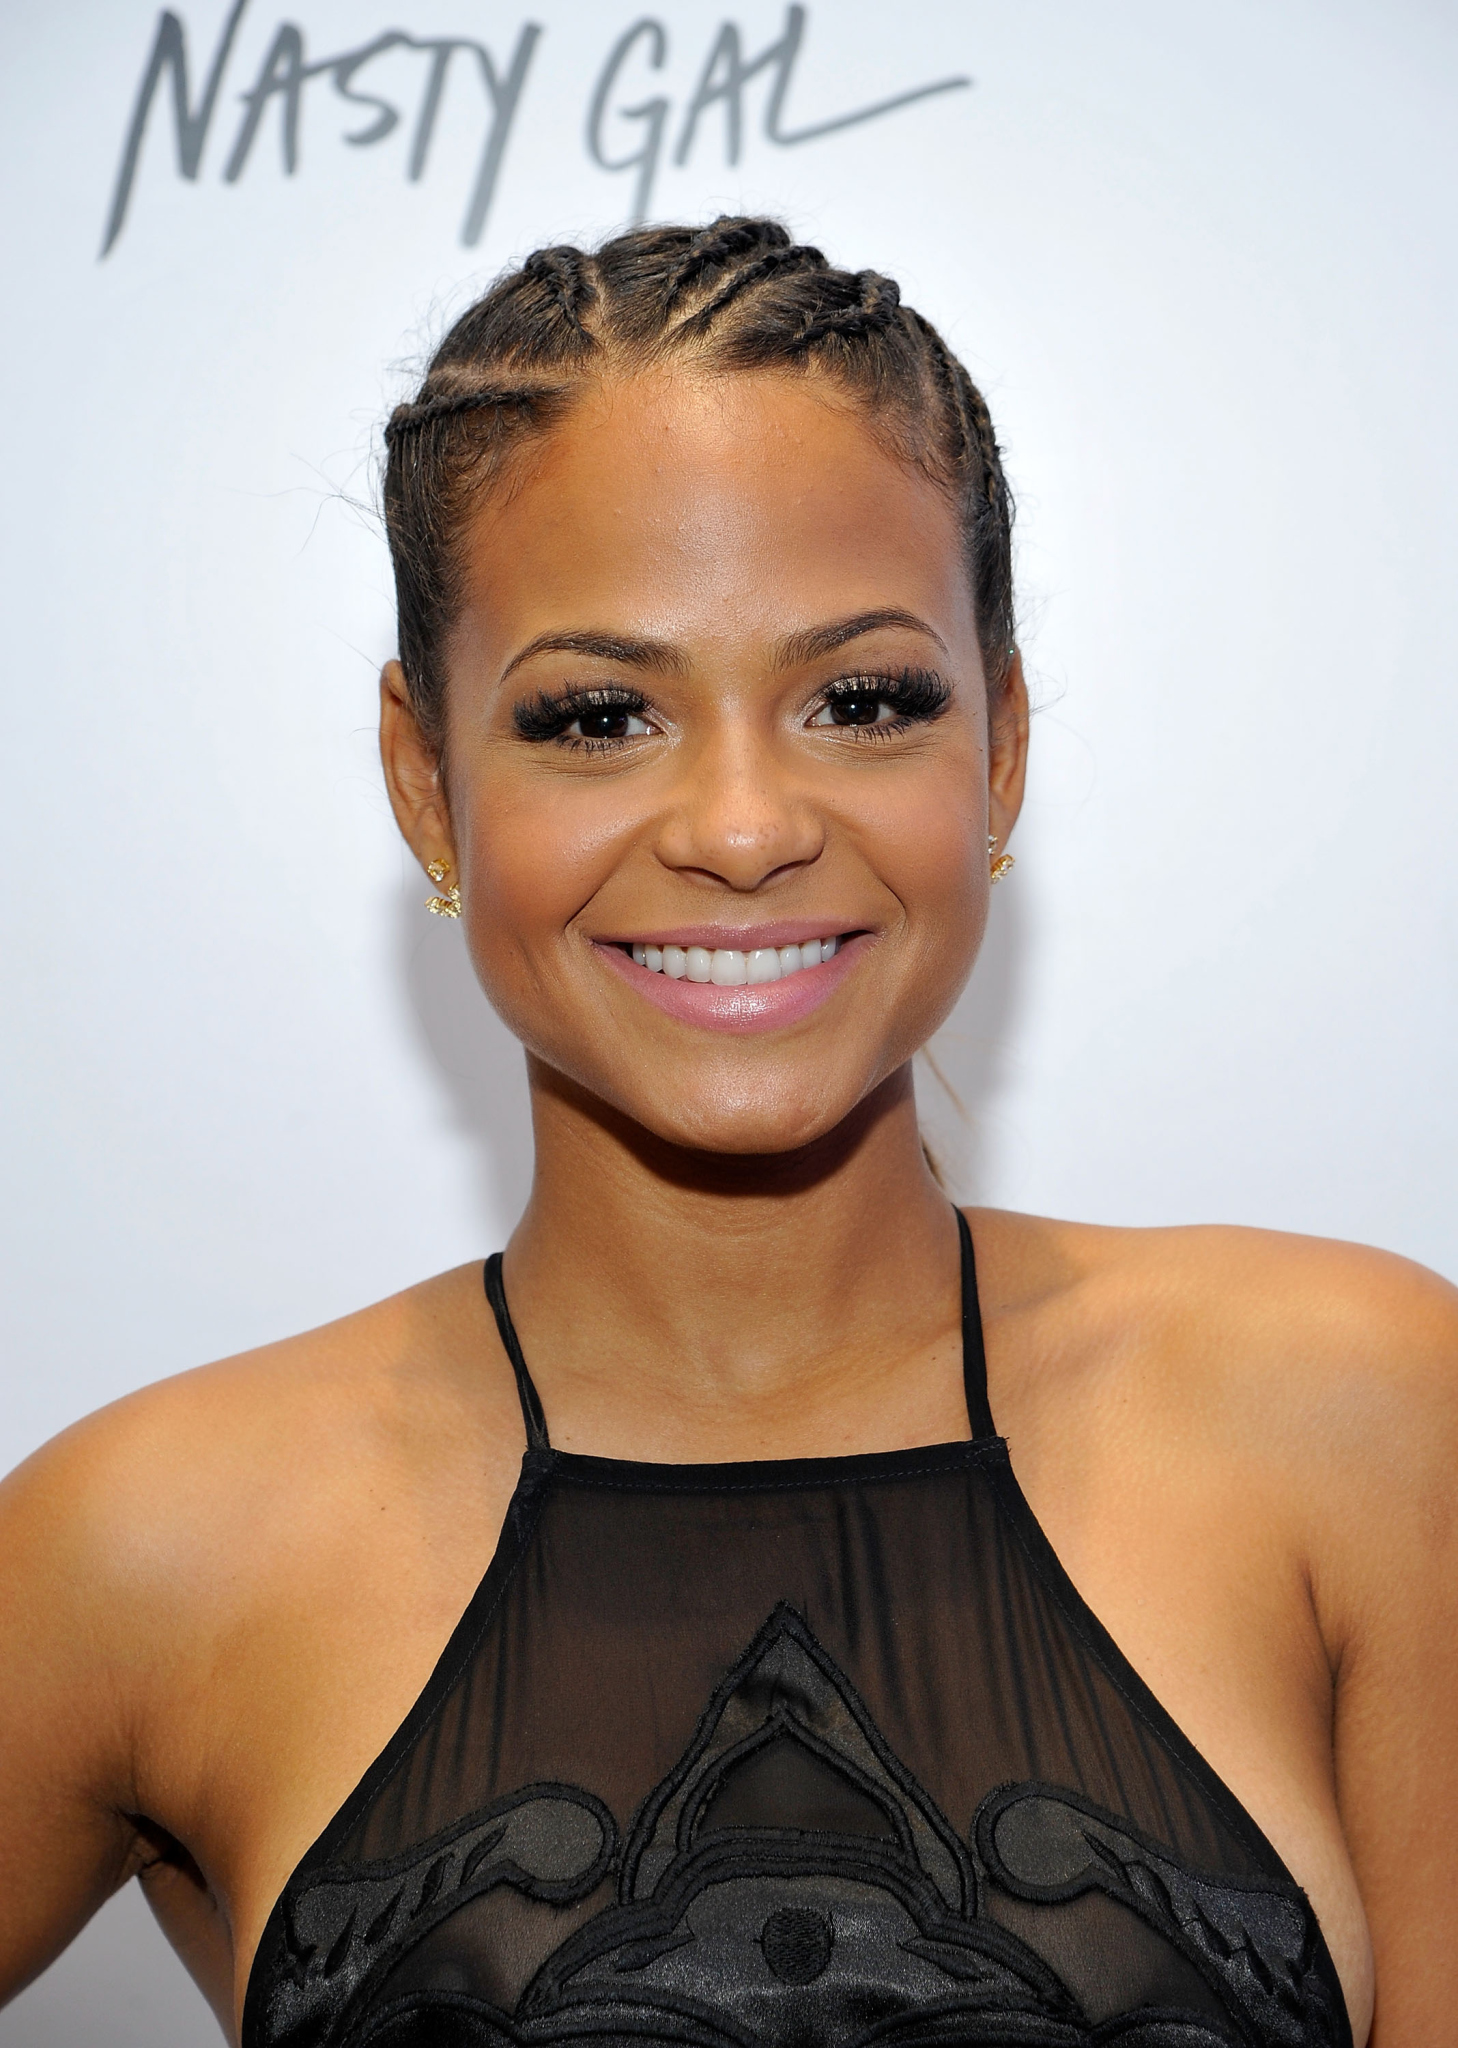 christina-milian-see-through-top-nasty-gal-melrose-7.jpg